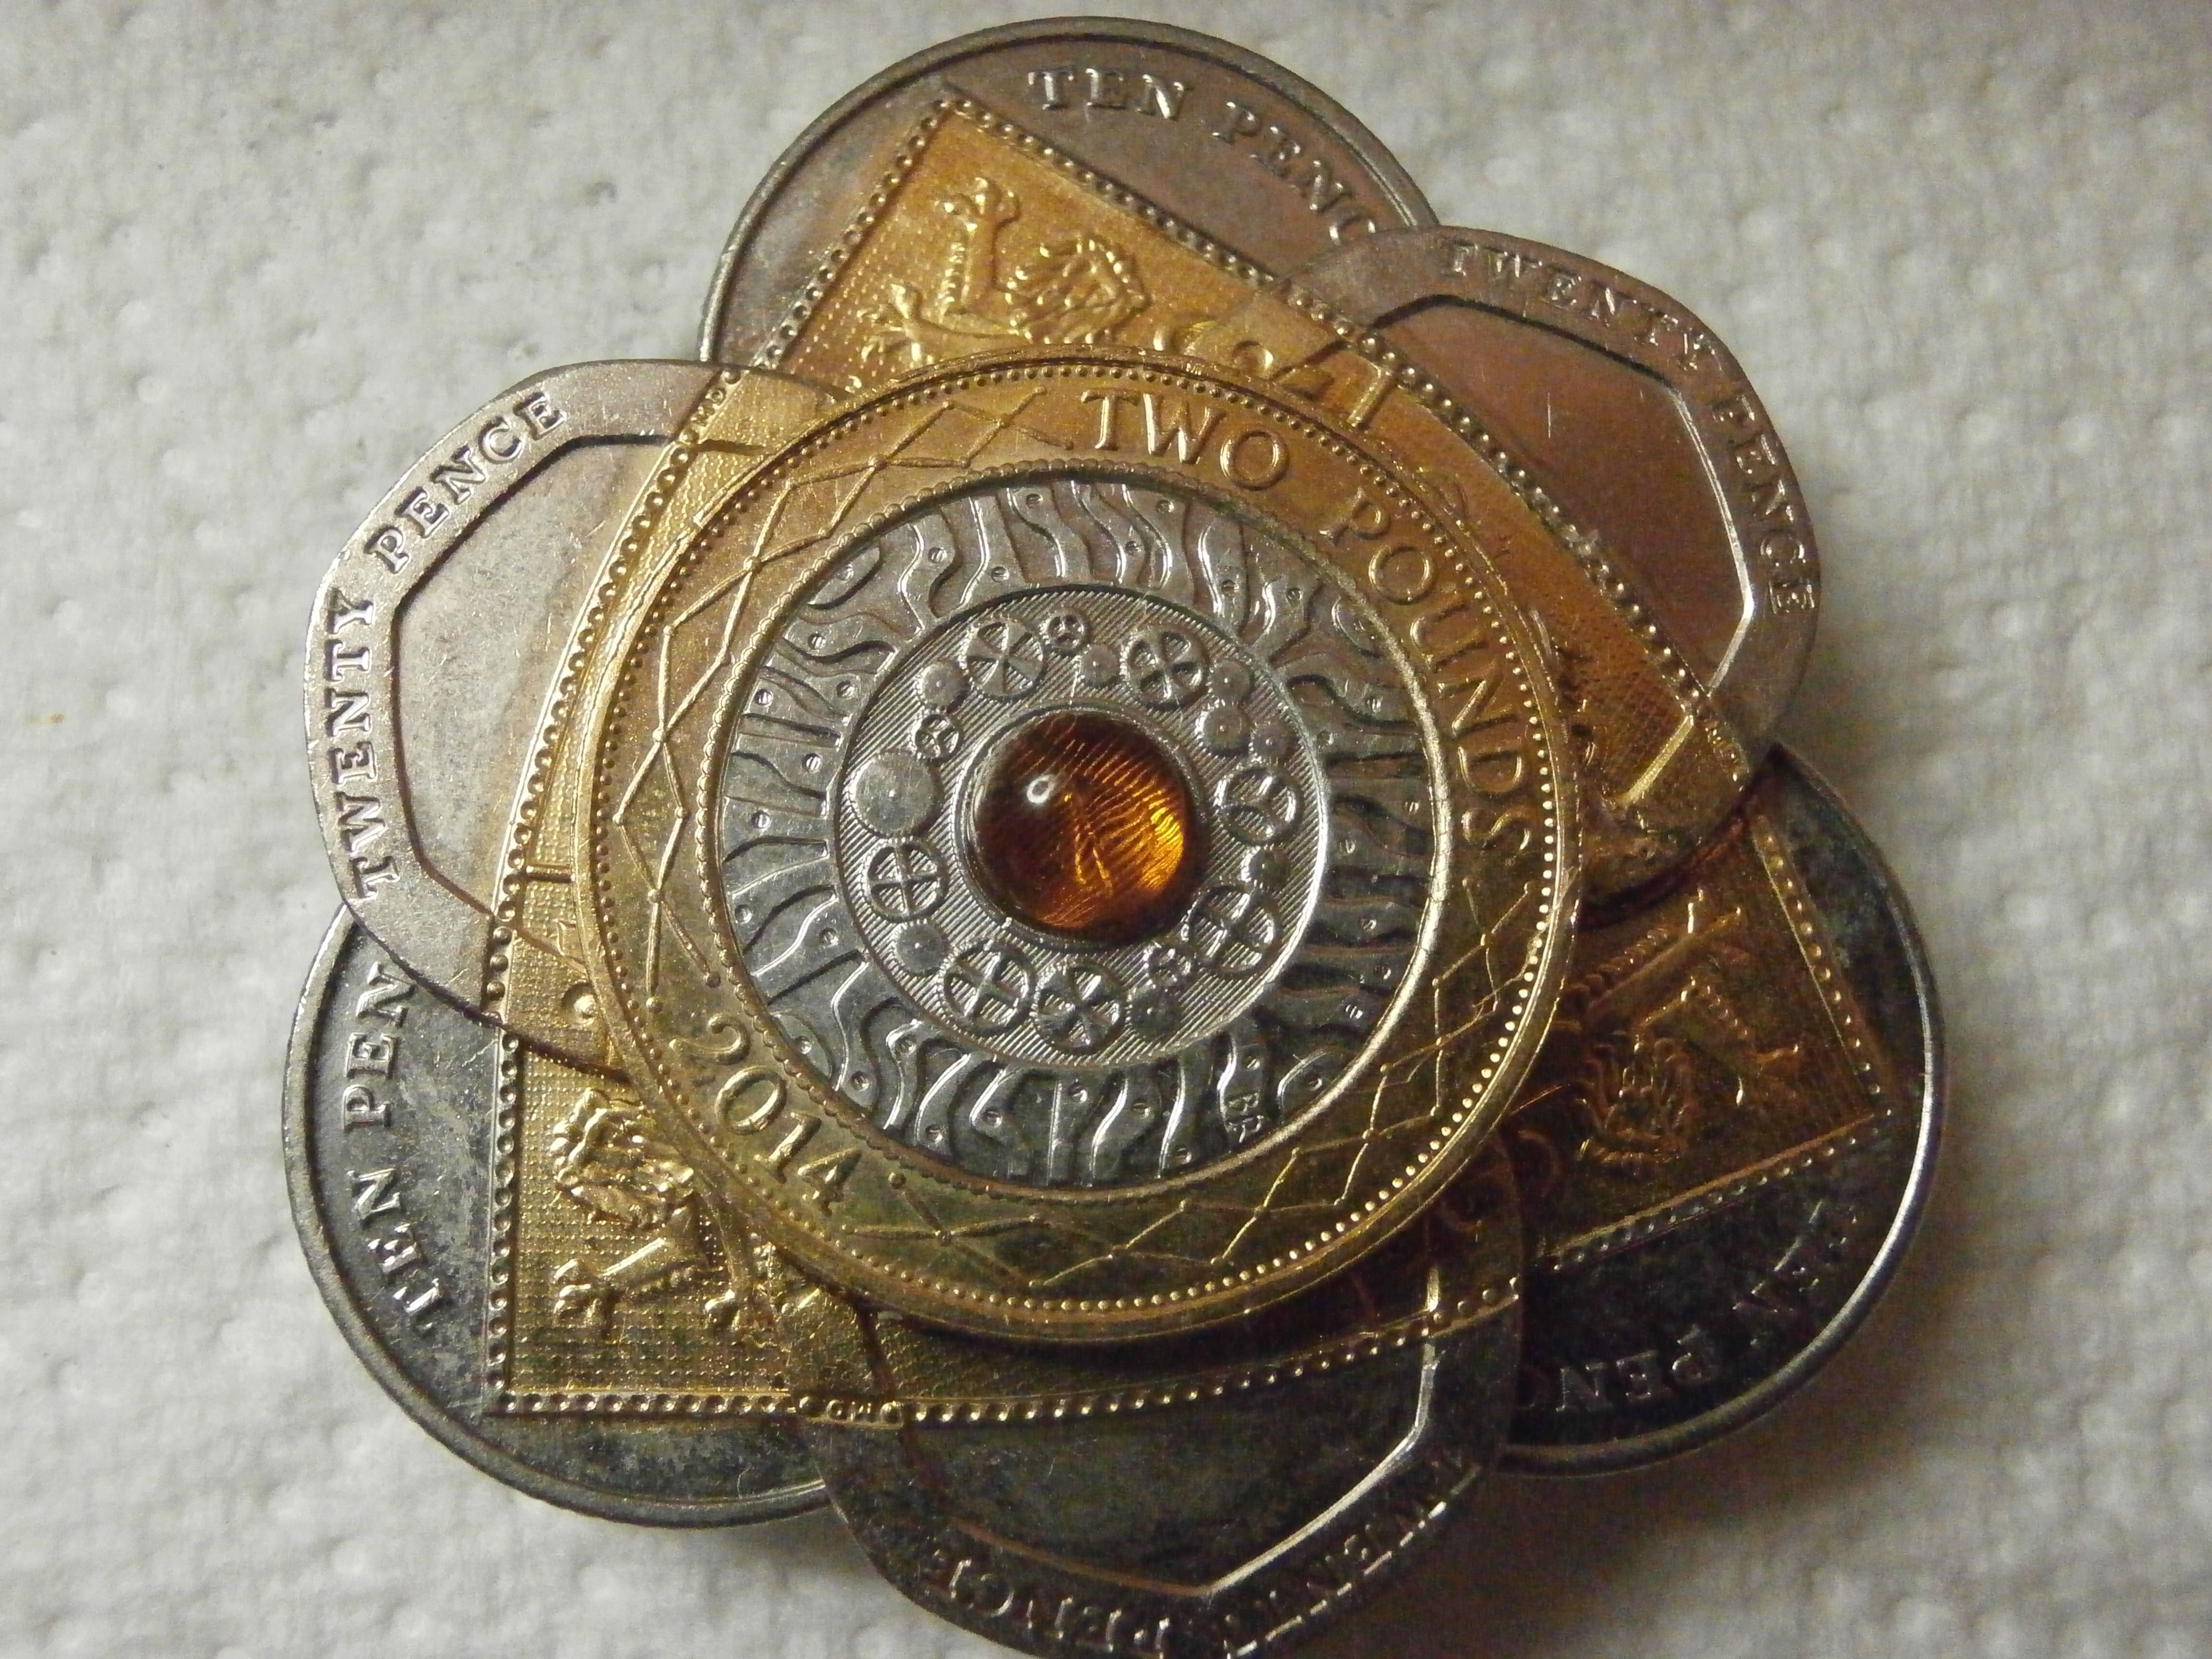 A Very Special Bolo Was Made From Very Back Ten Pence